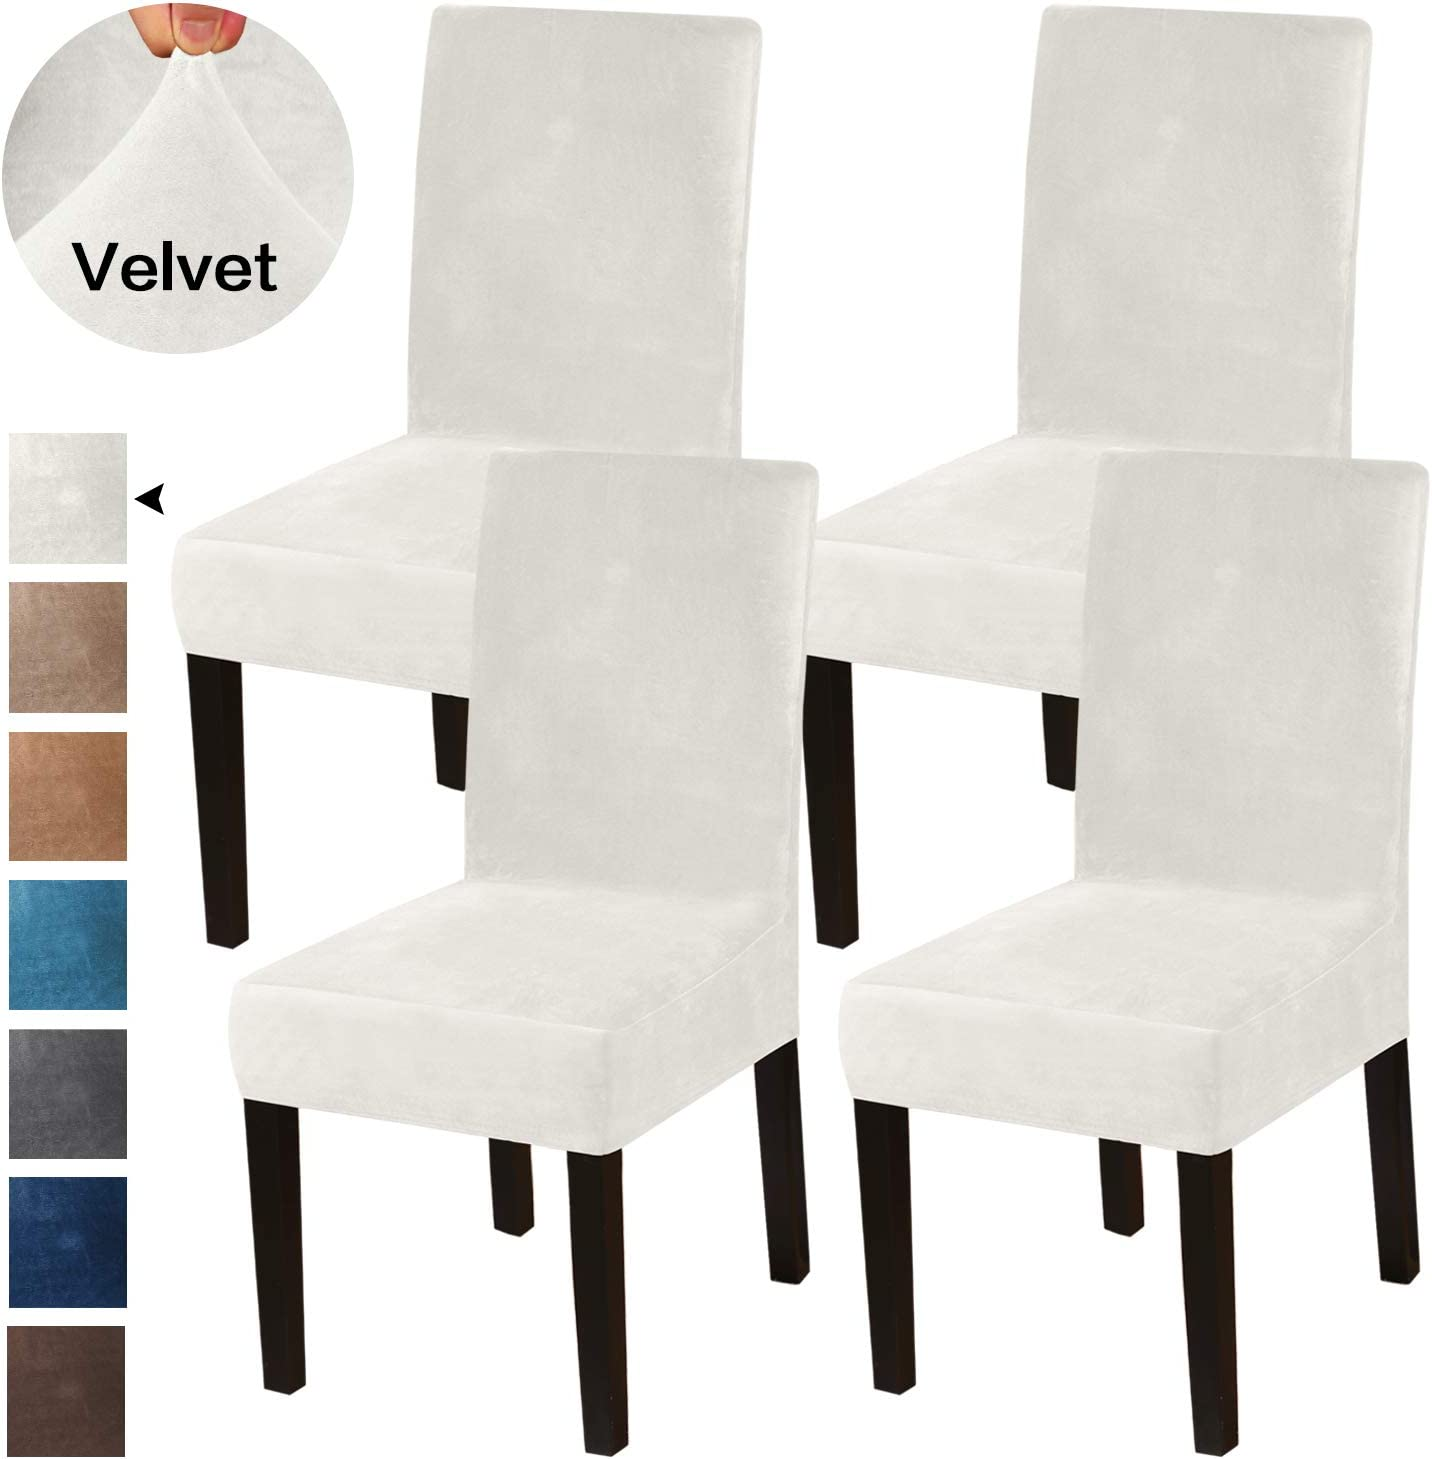 Turquoize Dining Chair Covers Stretch Chair Covers for Dining Room Velvet Chair Protector Covers Slipcover Parson Chair Covers Set of 4 for Hotel Ceremony, Thick Soft Modern Style, Ivory, 4